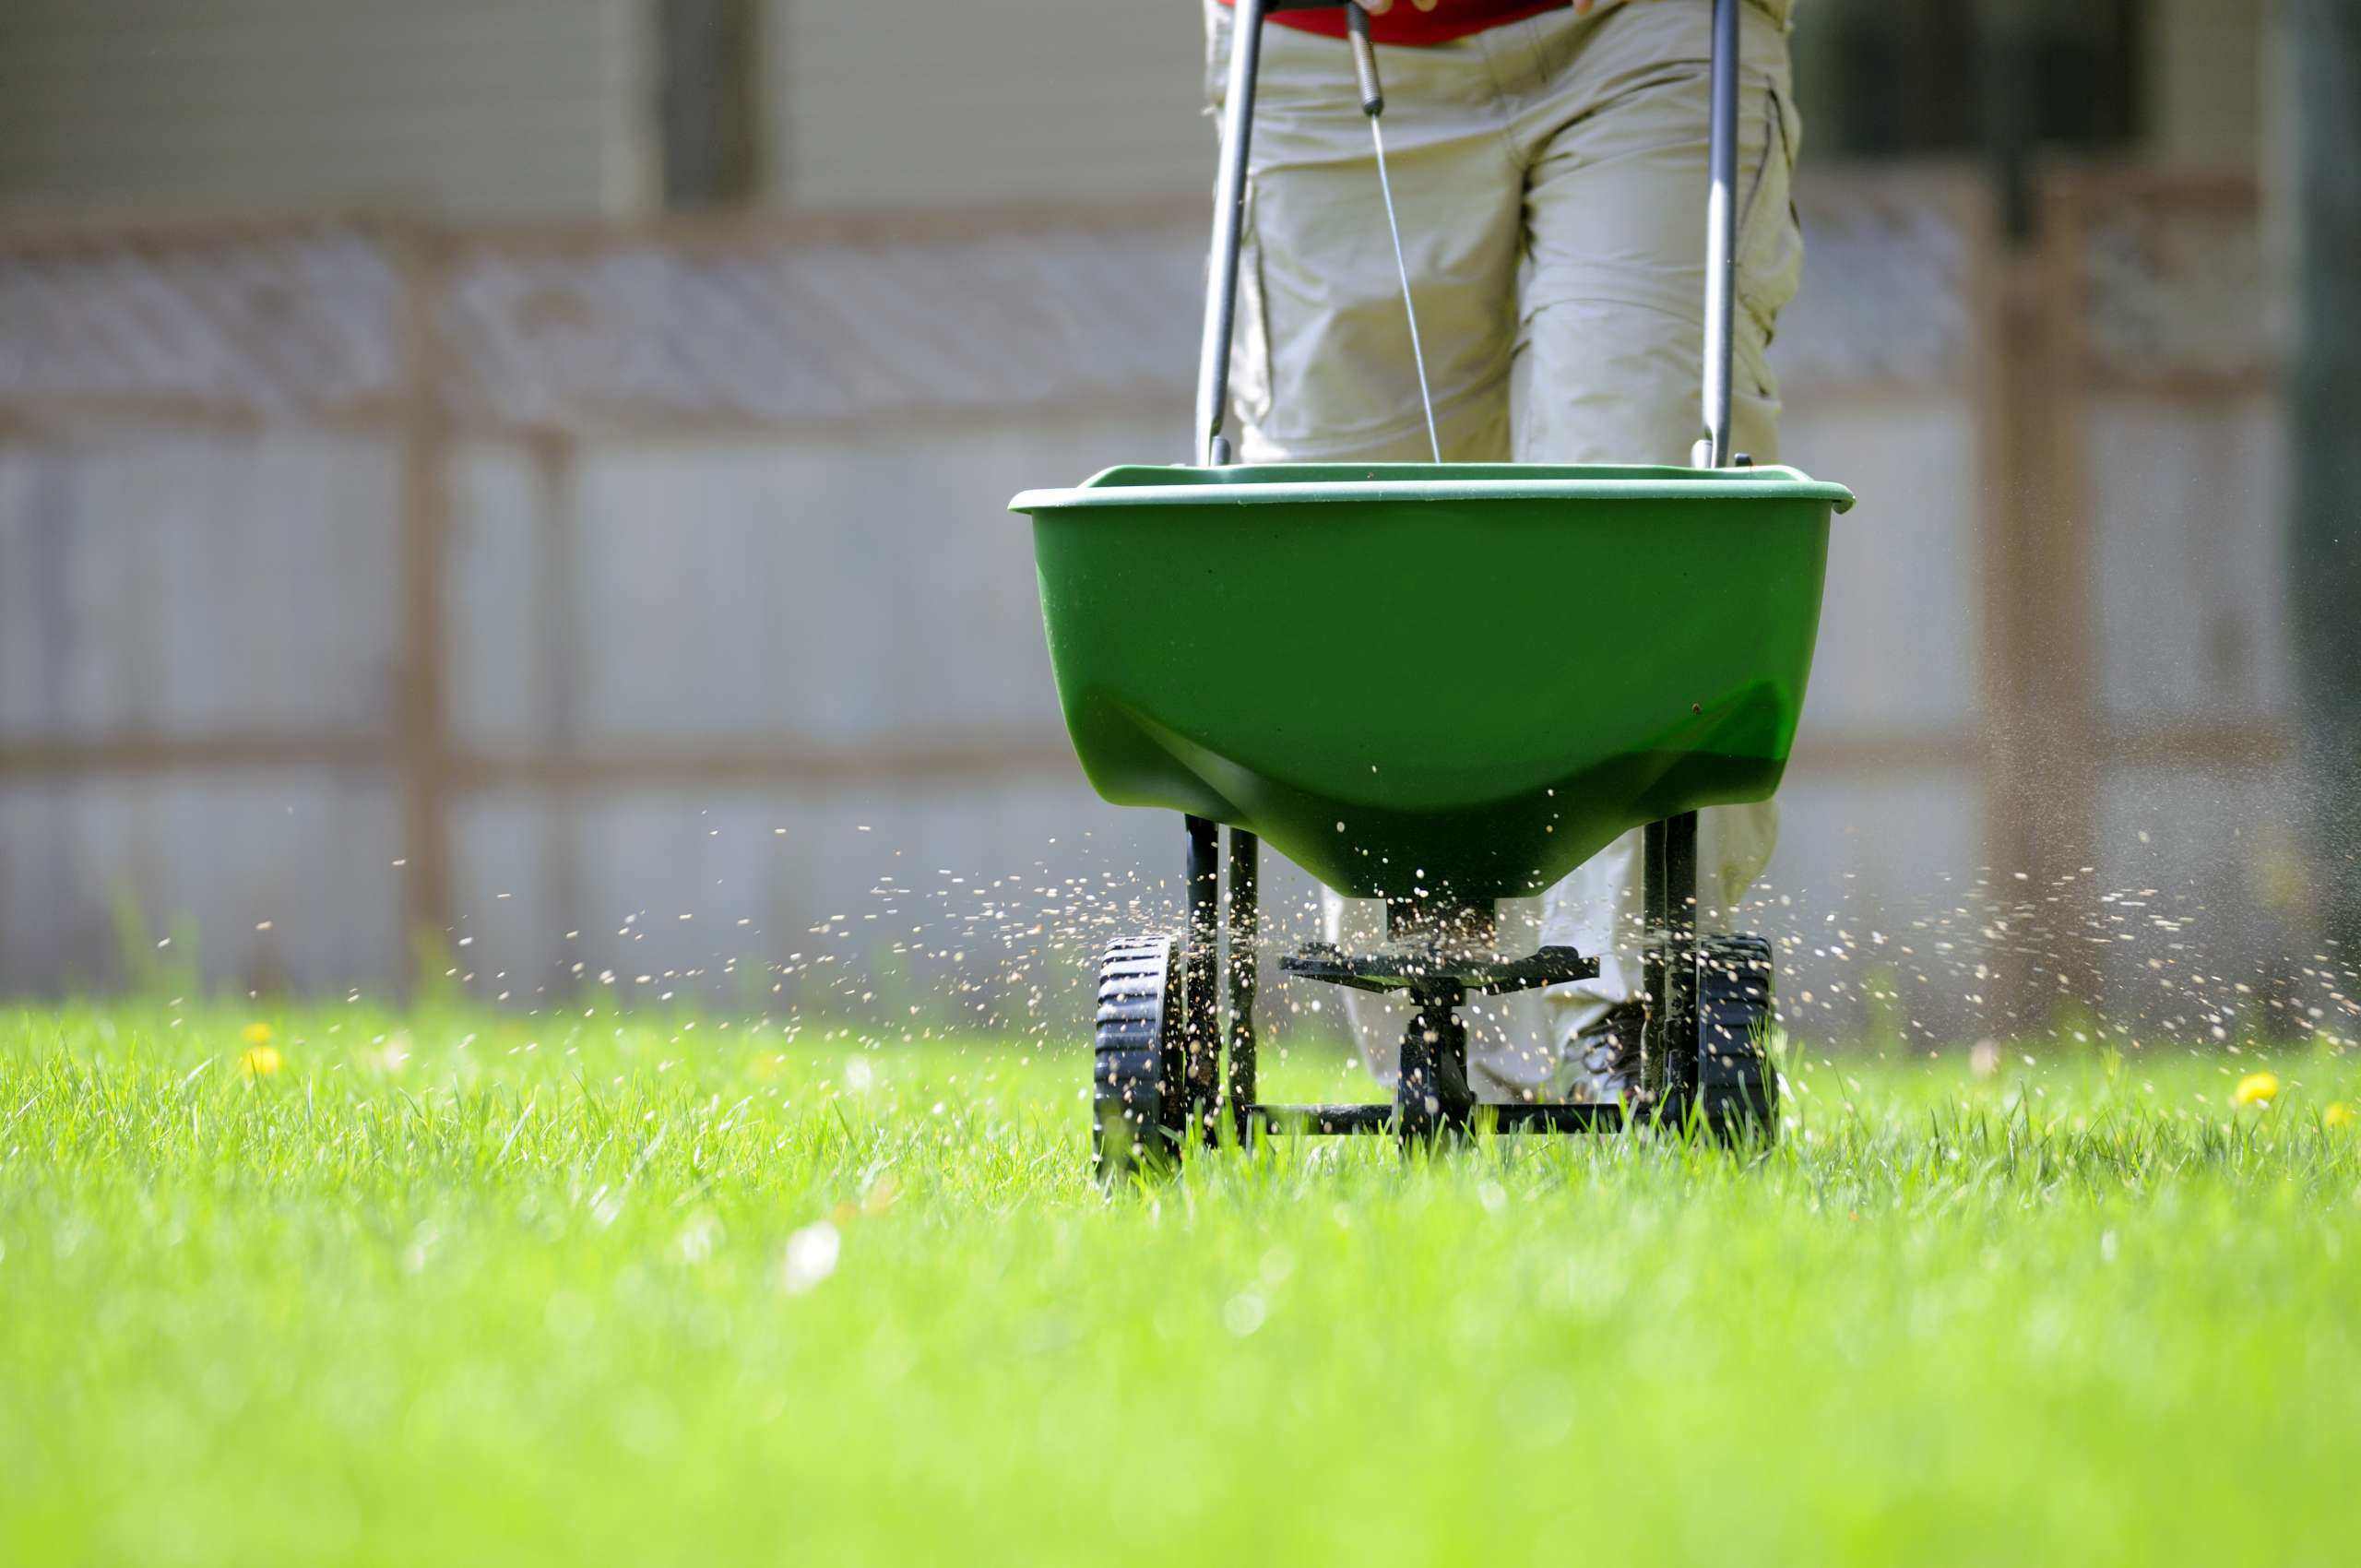 Lawn Fertilization using a broadcast spreader